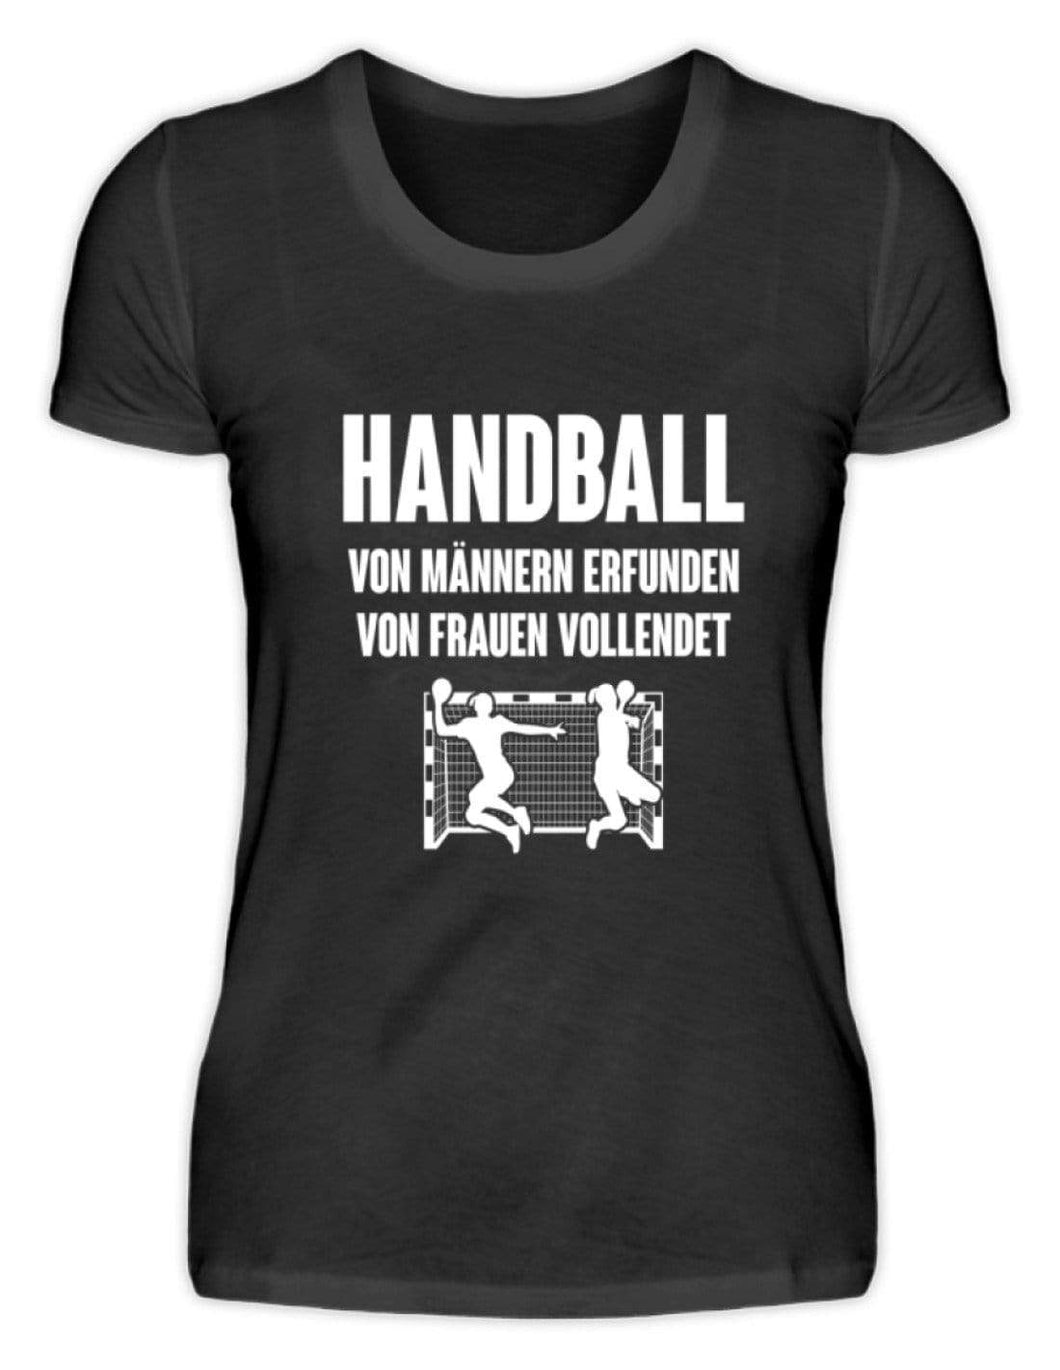 Damen Basic T-Shirt Black / S Handball: Von Frauen vollendet  - Damenshirt (4337390518324)